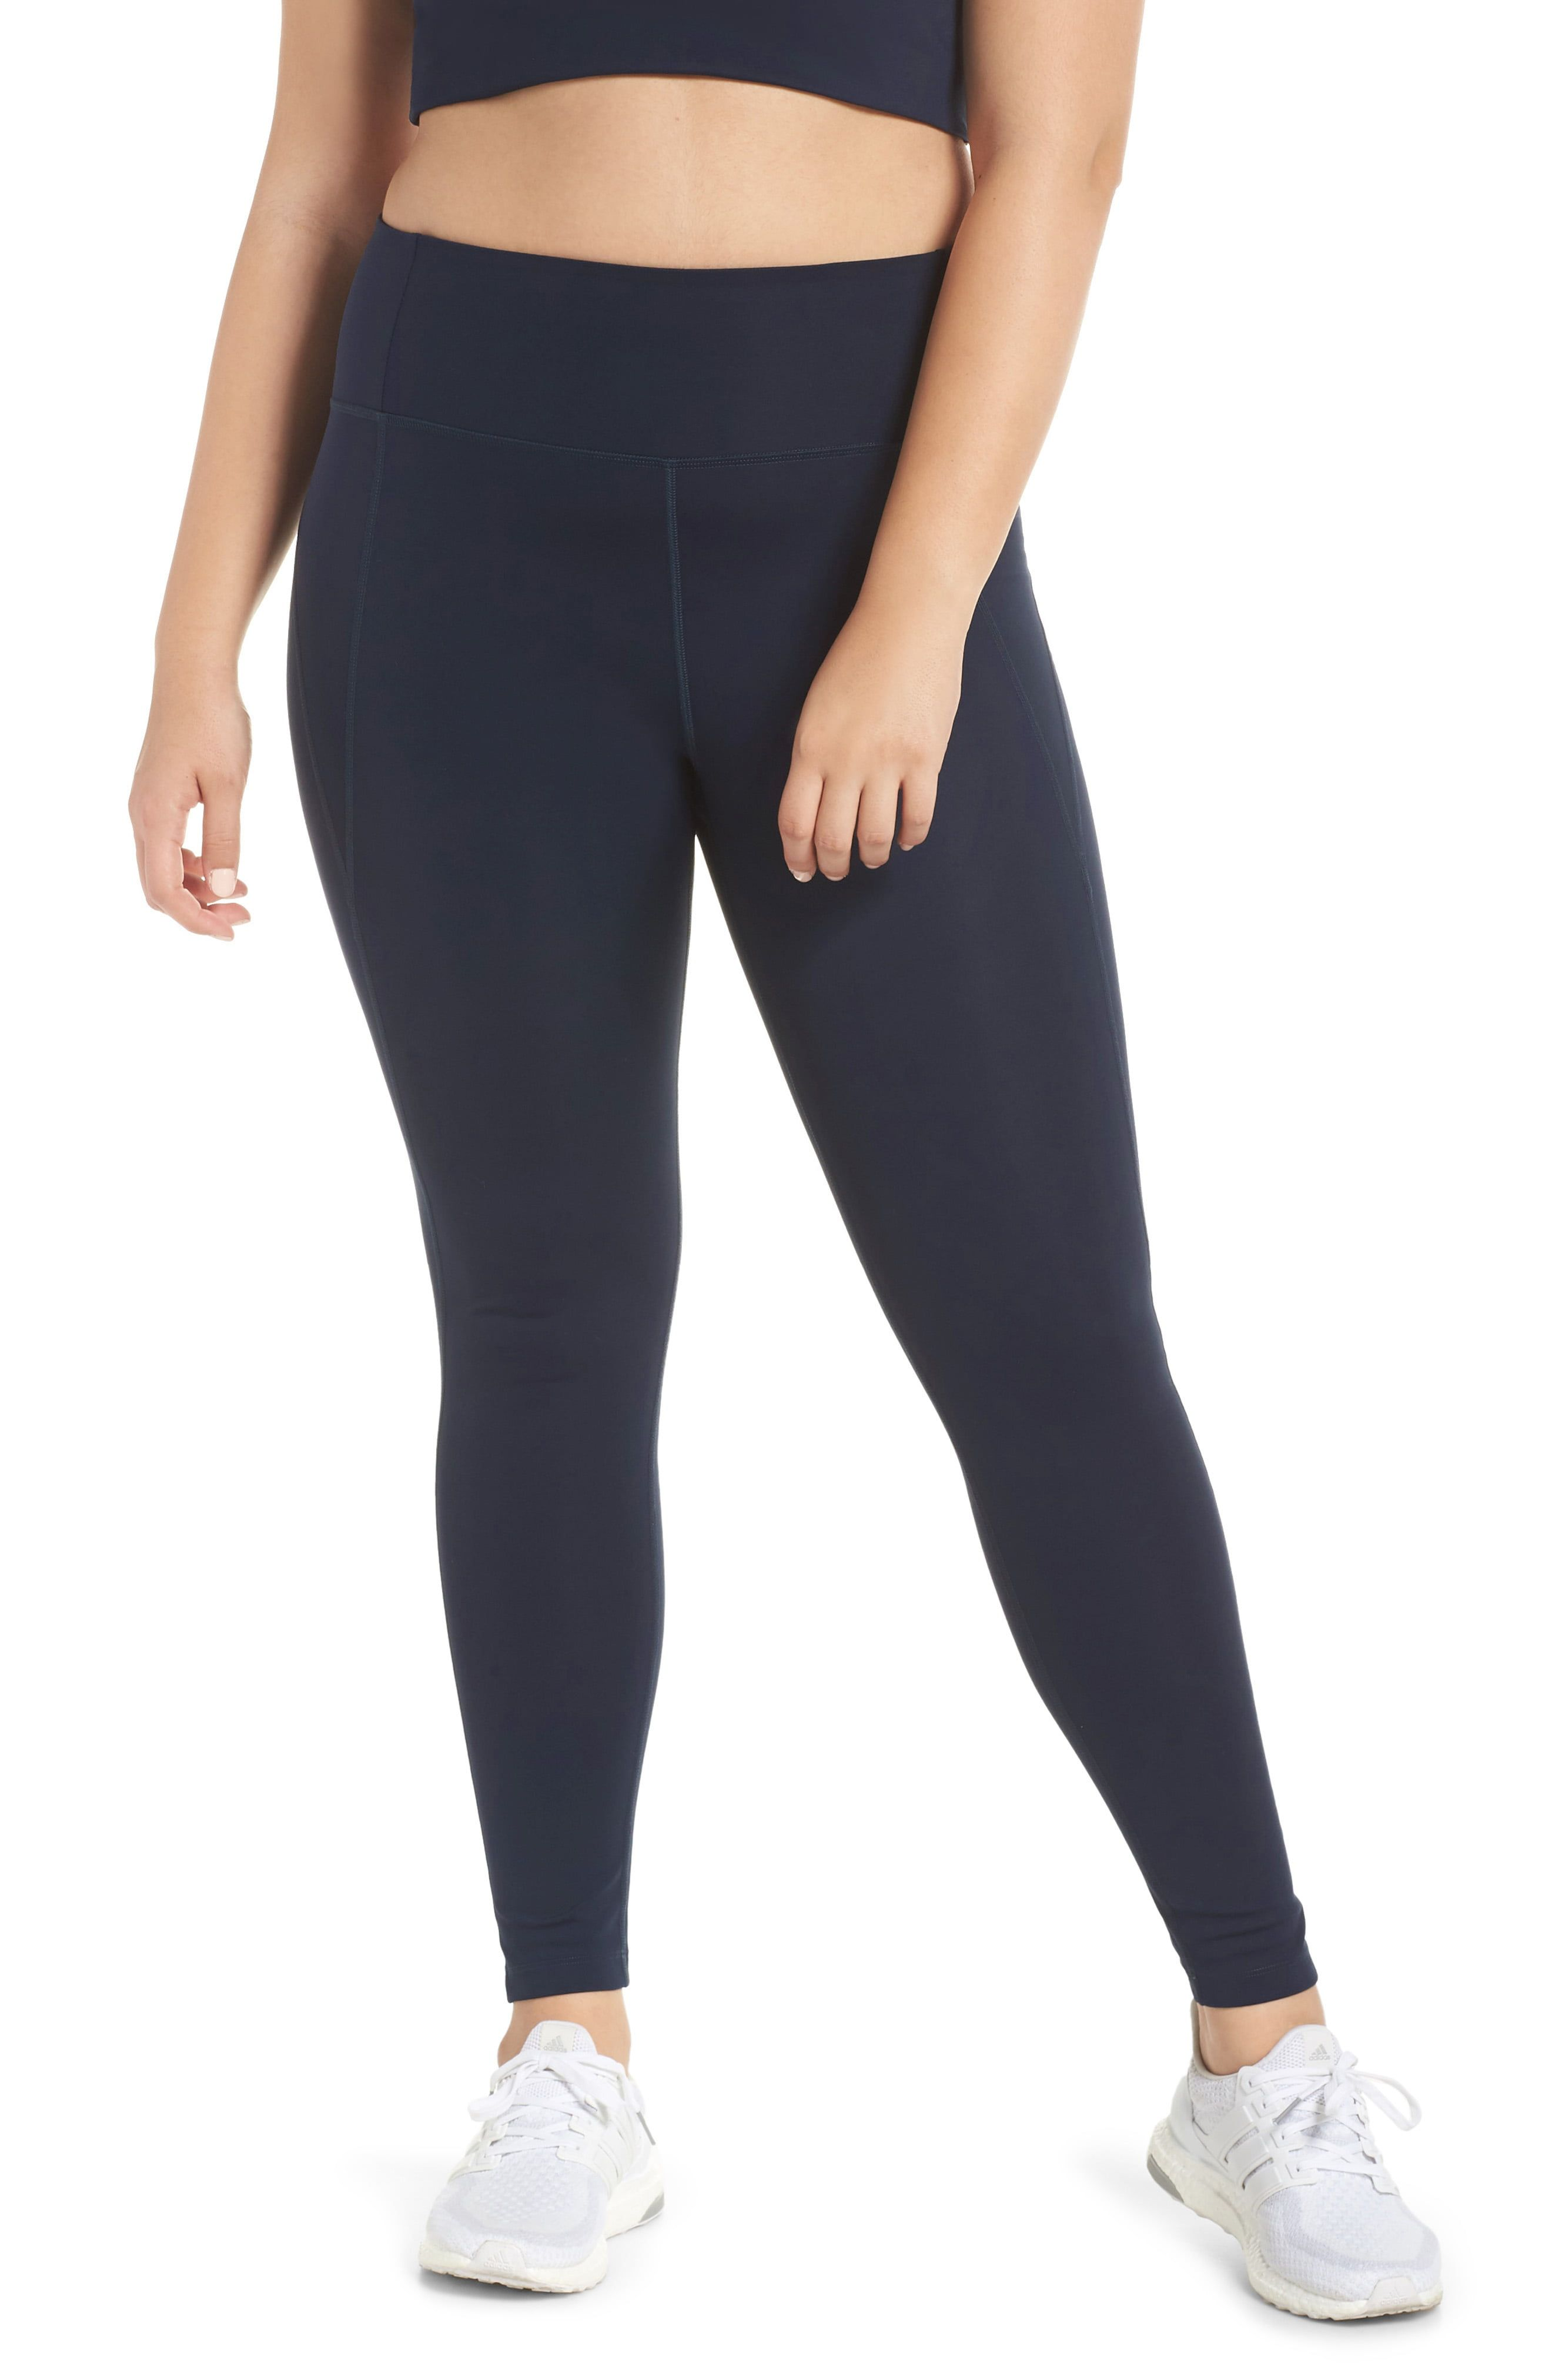 Gym Cropped Leggings Womens Tights Pants Super Soft Full Length Opaque Slim One Size and Plus Size FASHION BOUTIQUE Beelu High Waist Capri Leggings Women